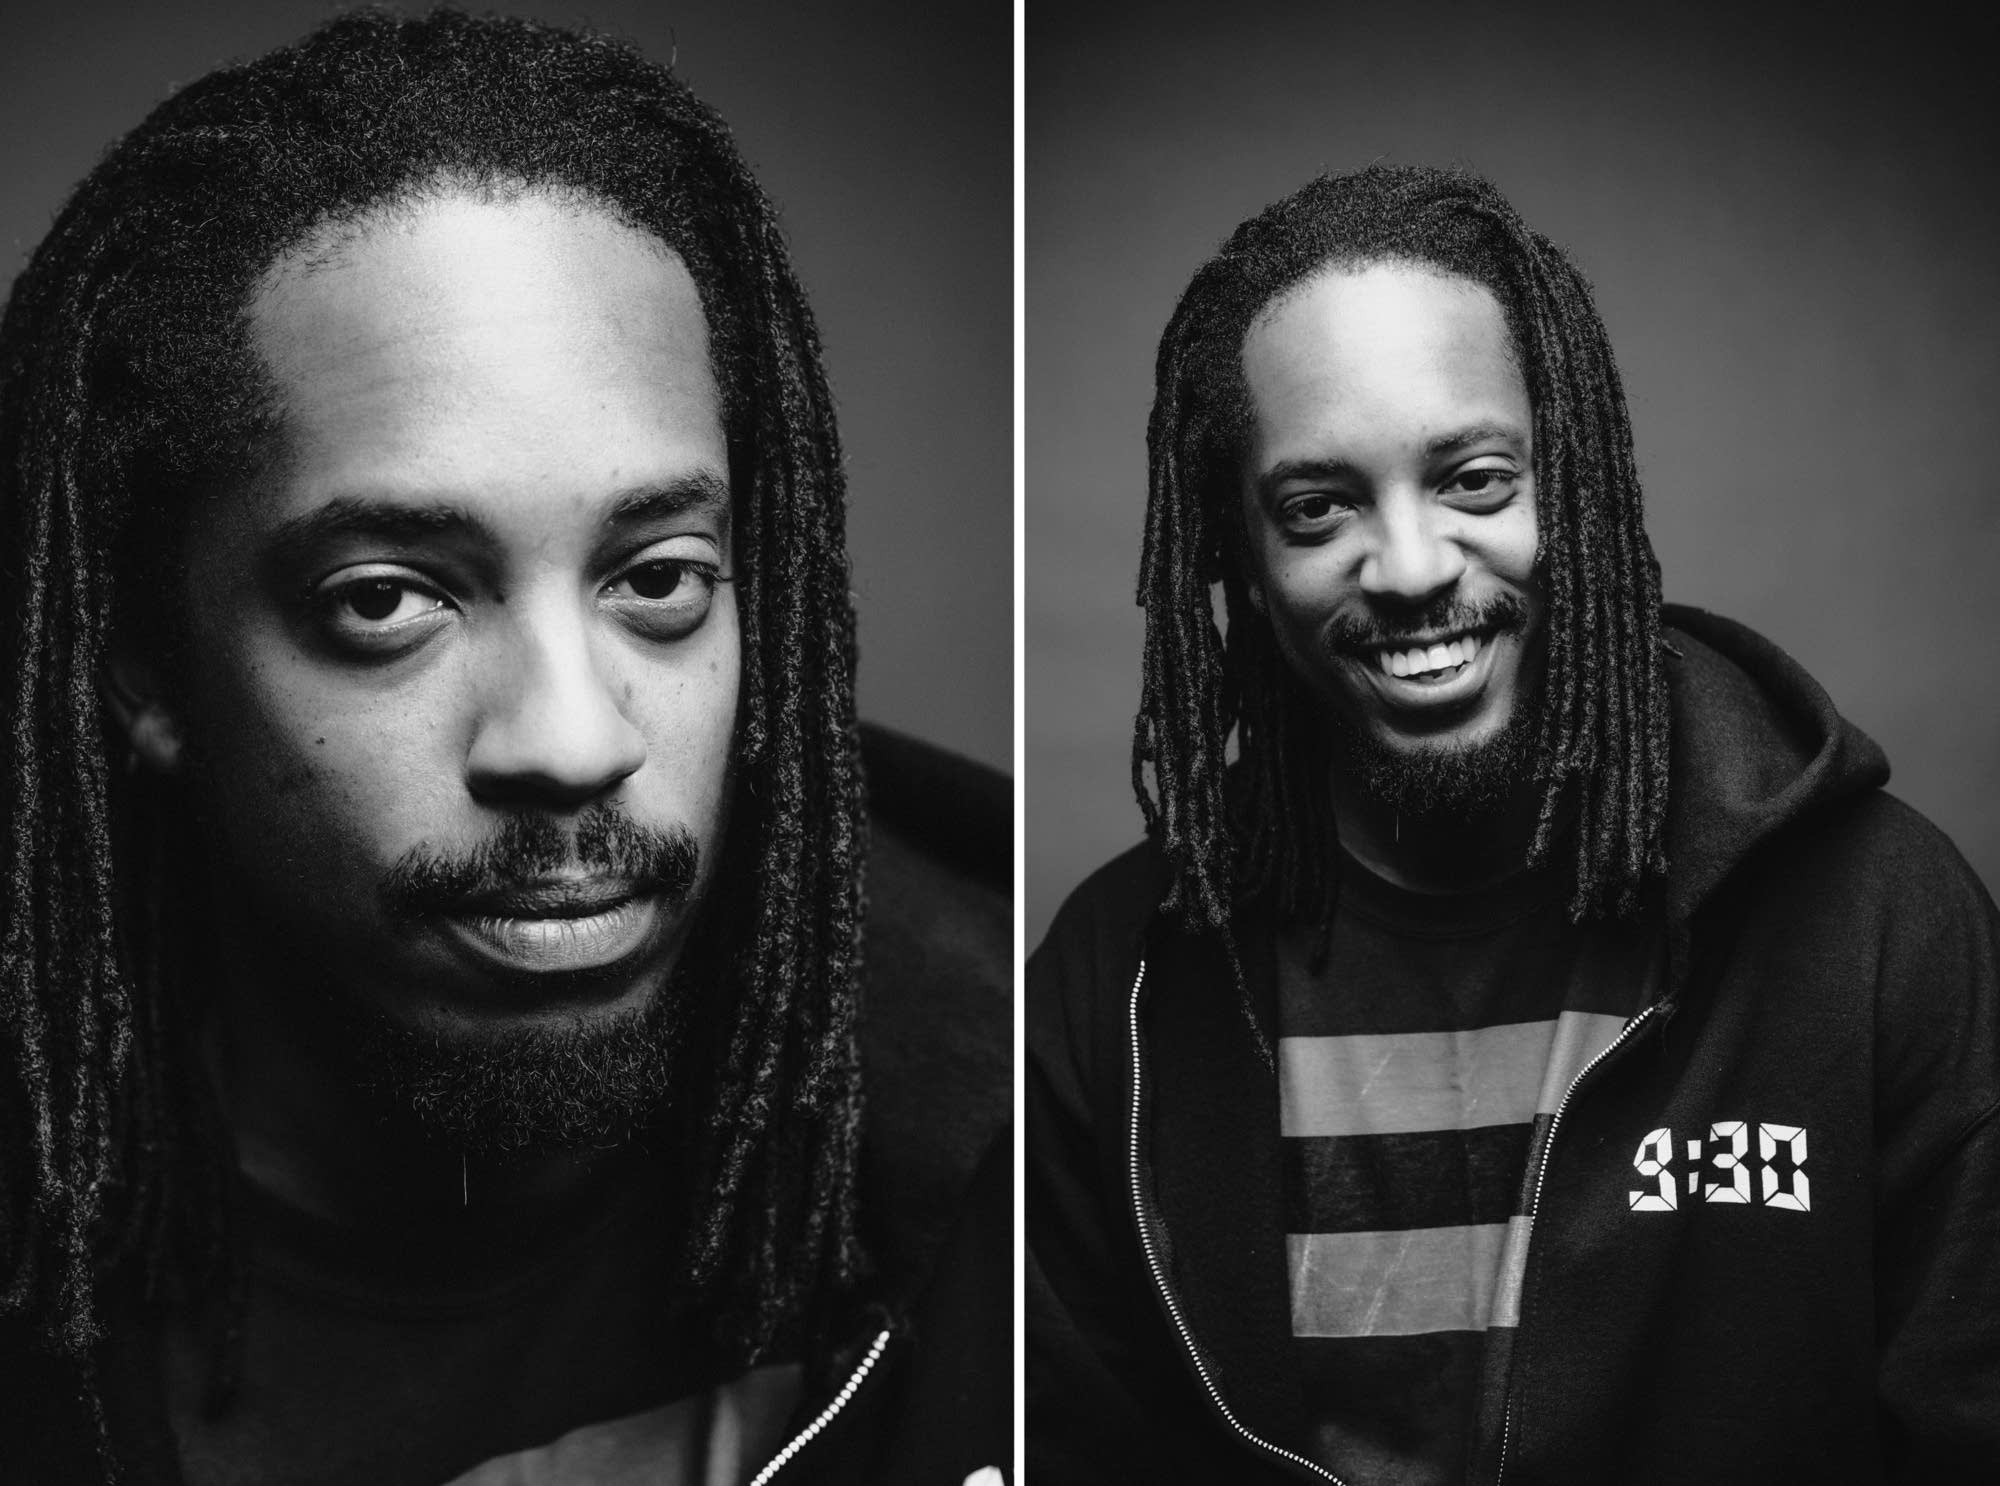 Black Joe Lewis portraits taken just outside The Current studio